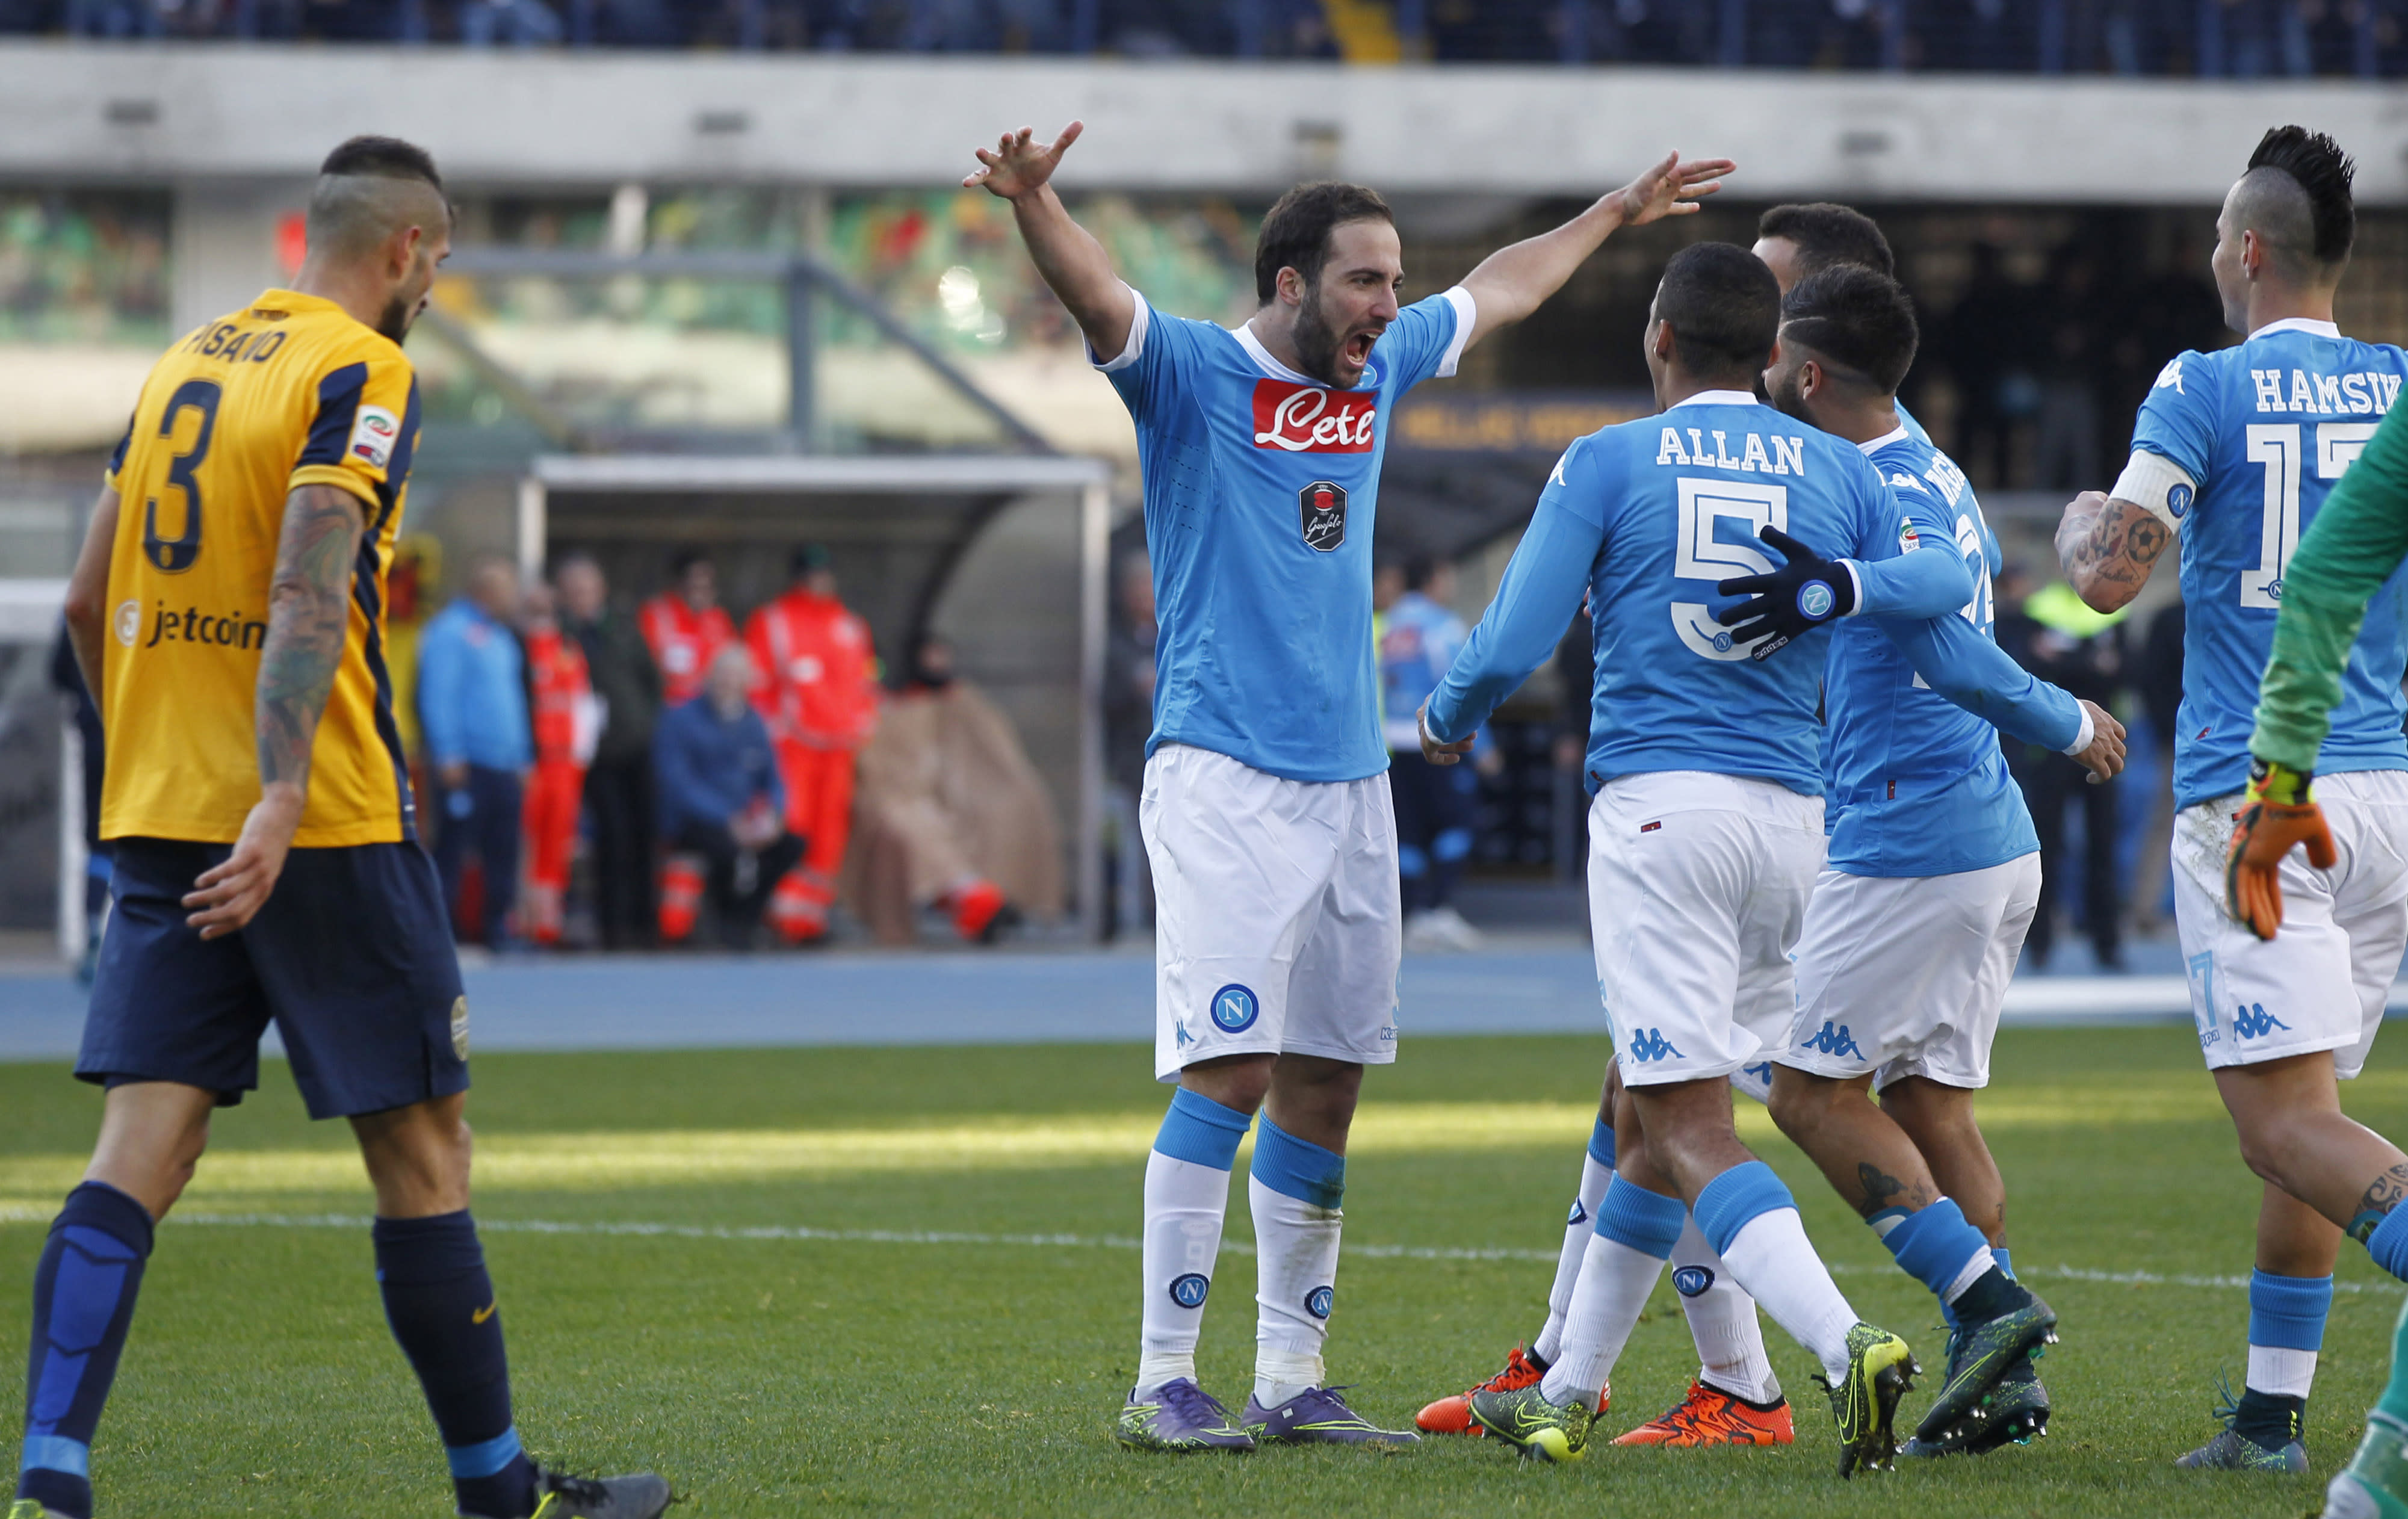 Napoli forward Higuain following in Maradona's footsteps